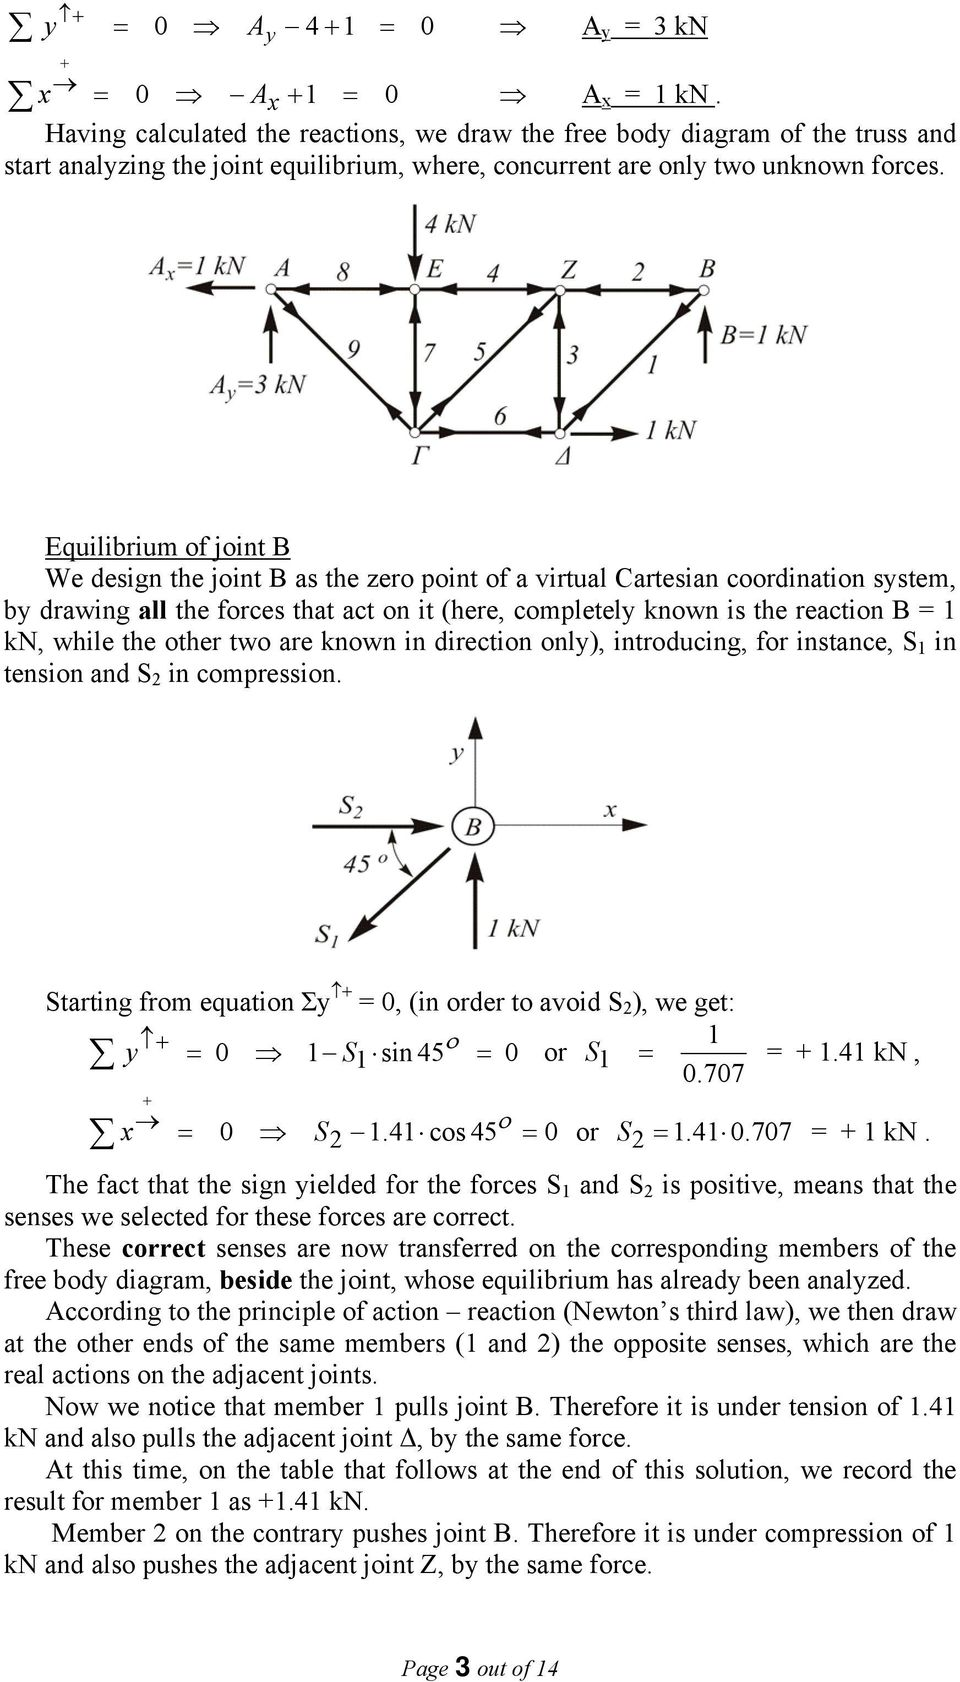 reactions the free body diagram of the truss as a unified structure